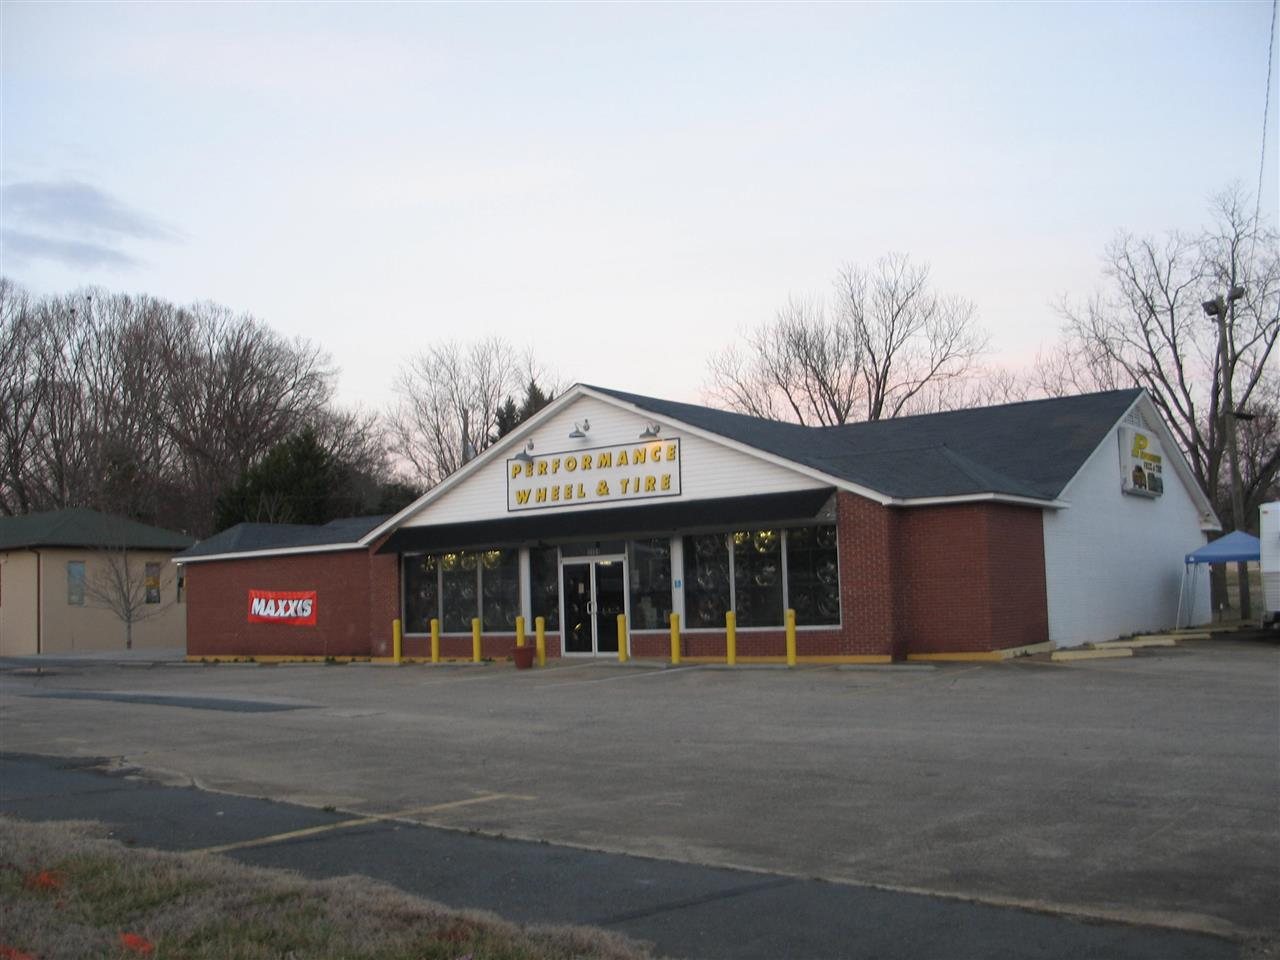 Commercial Property for Sale, ListingId:32071587, location: 3004 Hwy 21 Ft Mill 29715